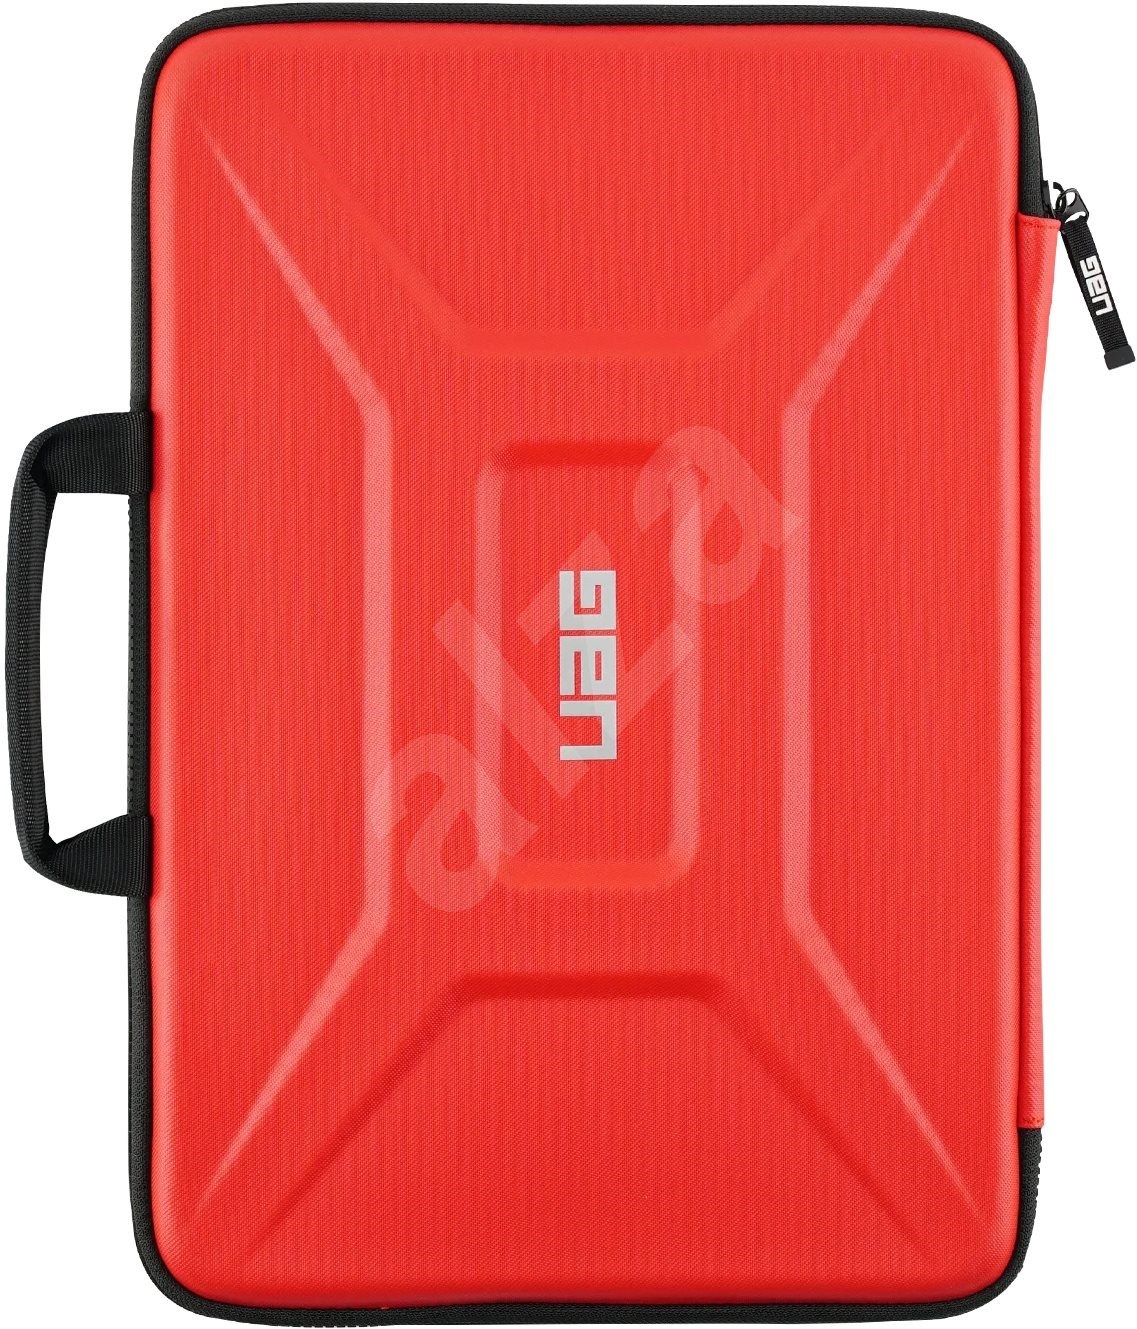 "UAG Large Sleeve Handle Red 15"" Laptop/Tablet - Tablet tok"